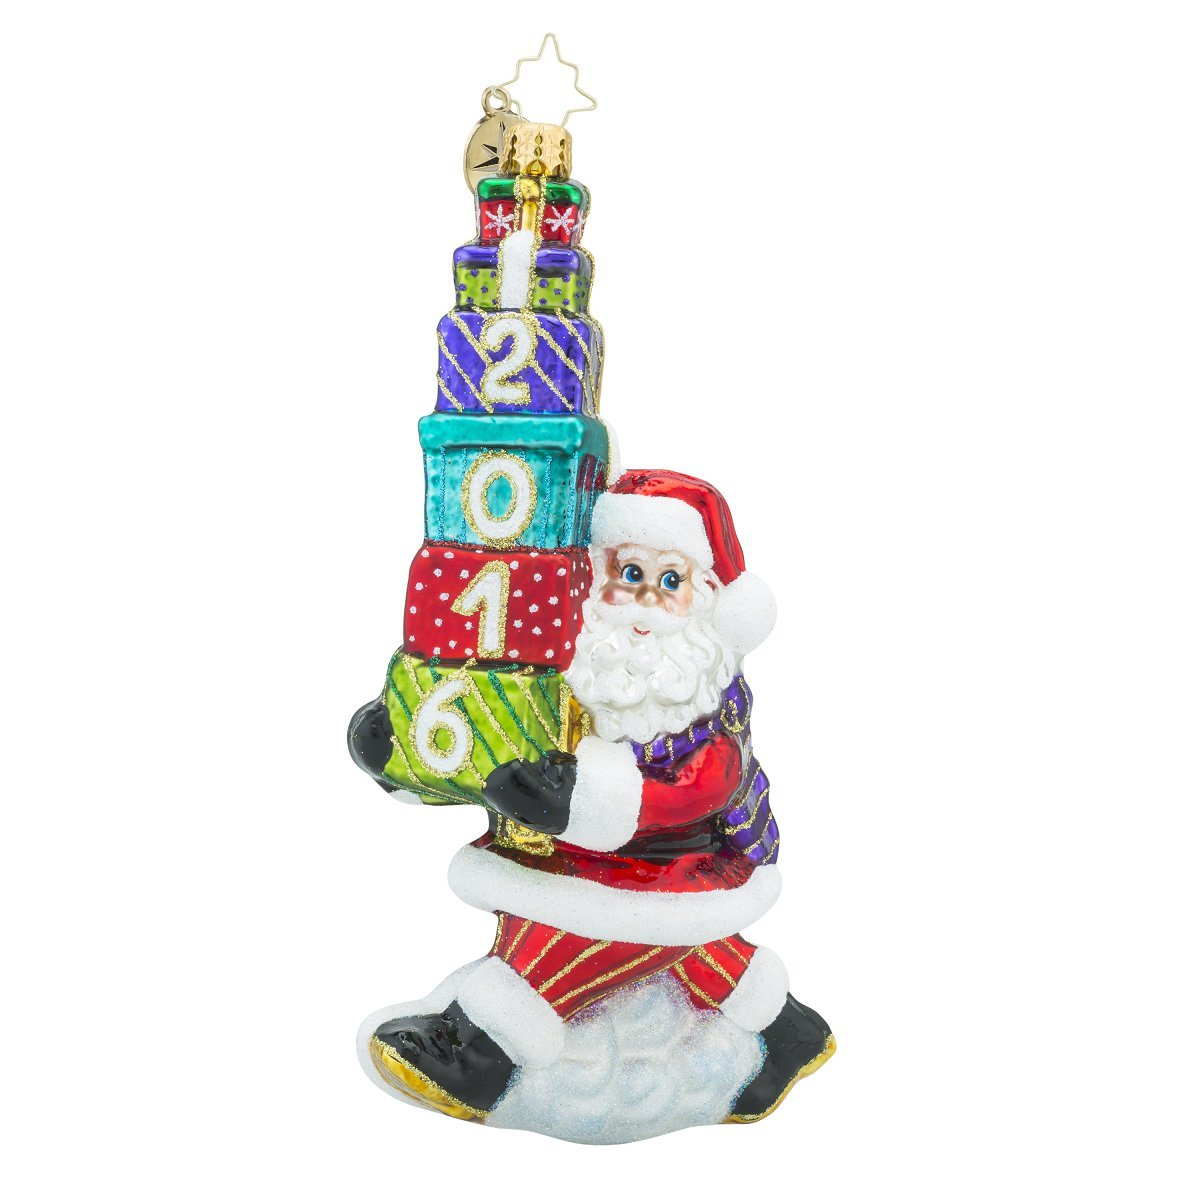 Christopher Radko 2016 Balancing the Date Santa Glass Christmas Ornament - 7.25''h. by Christopher Radko